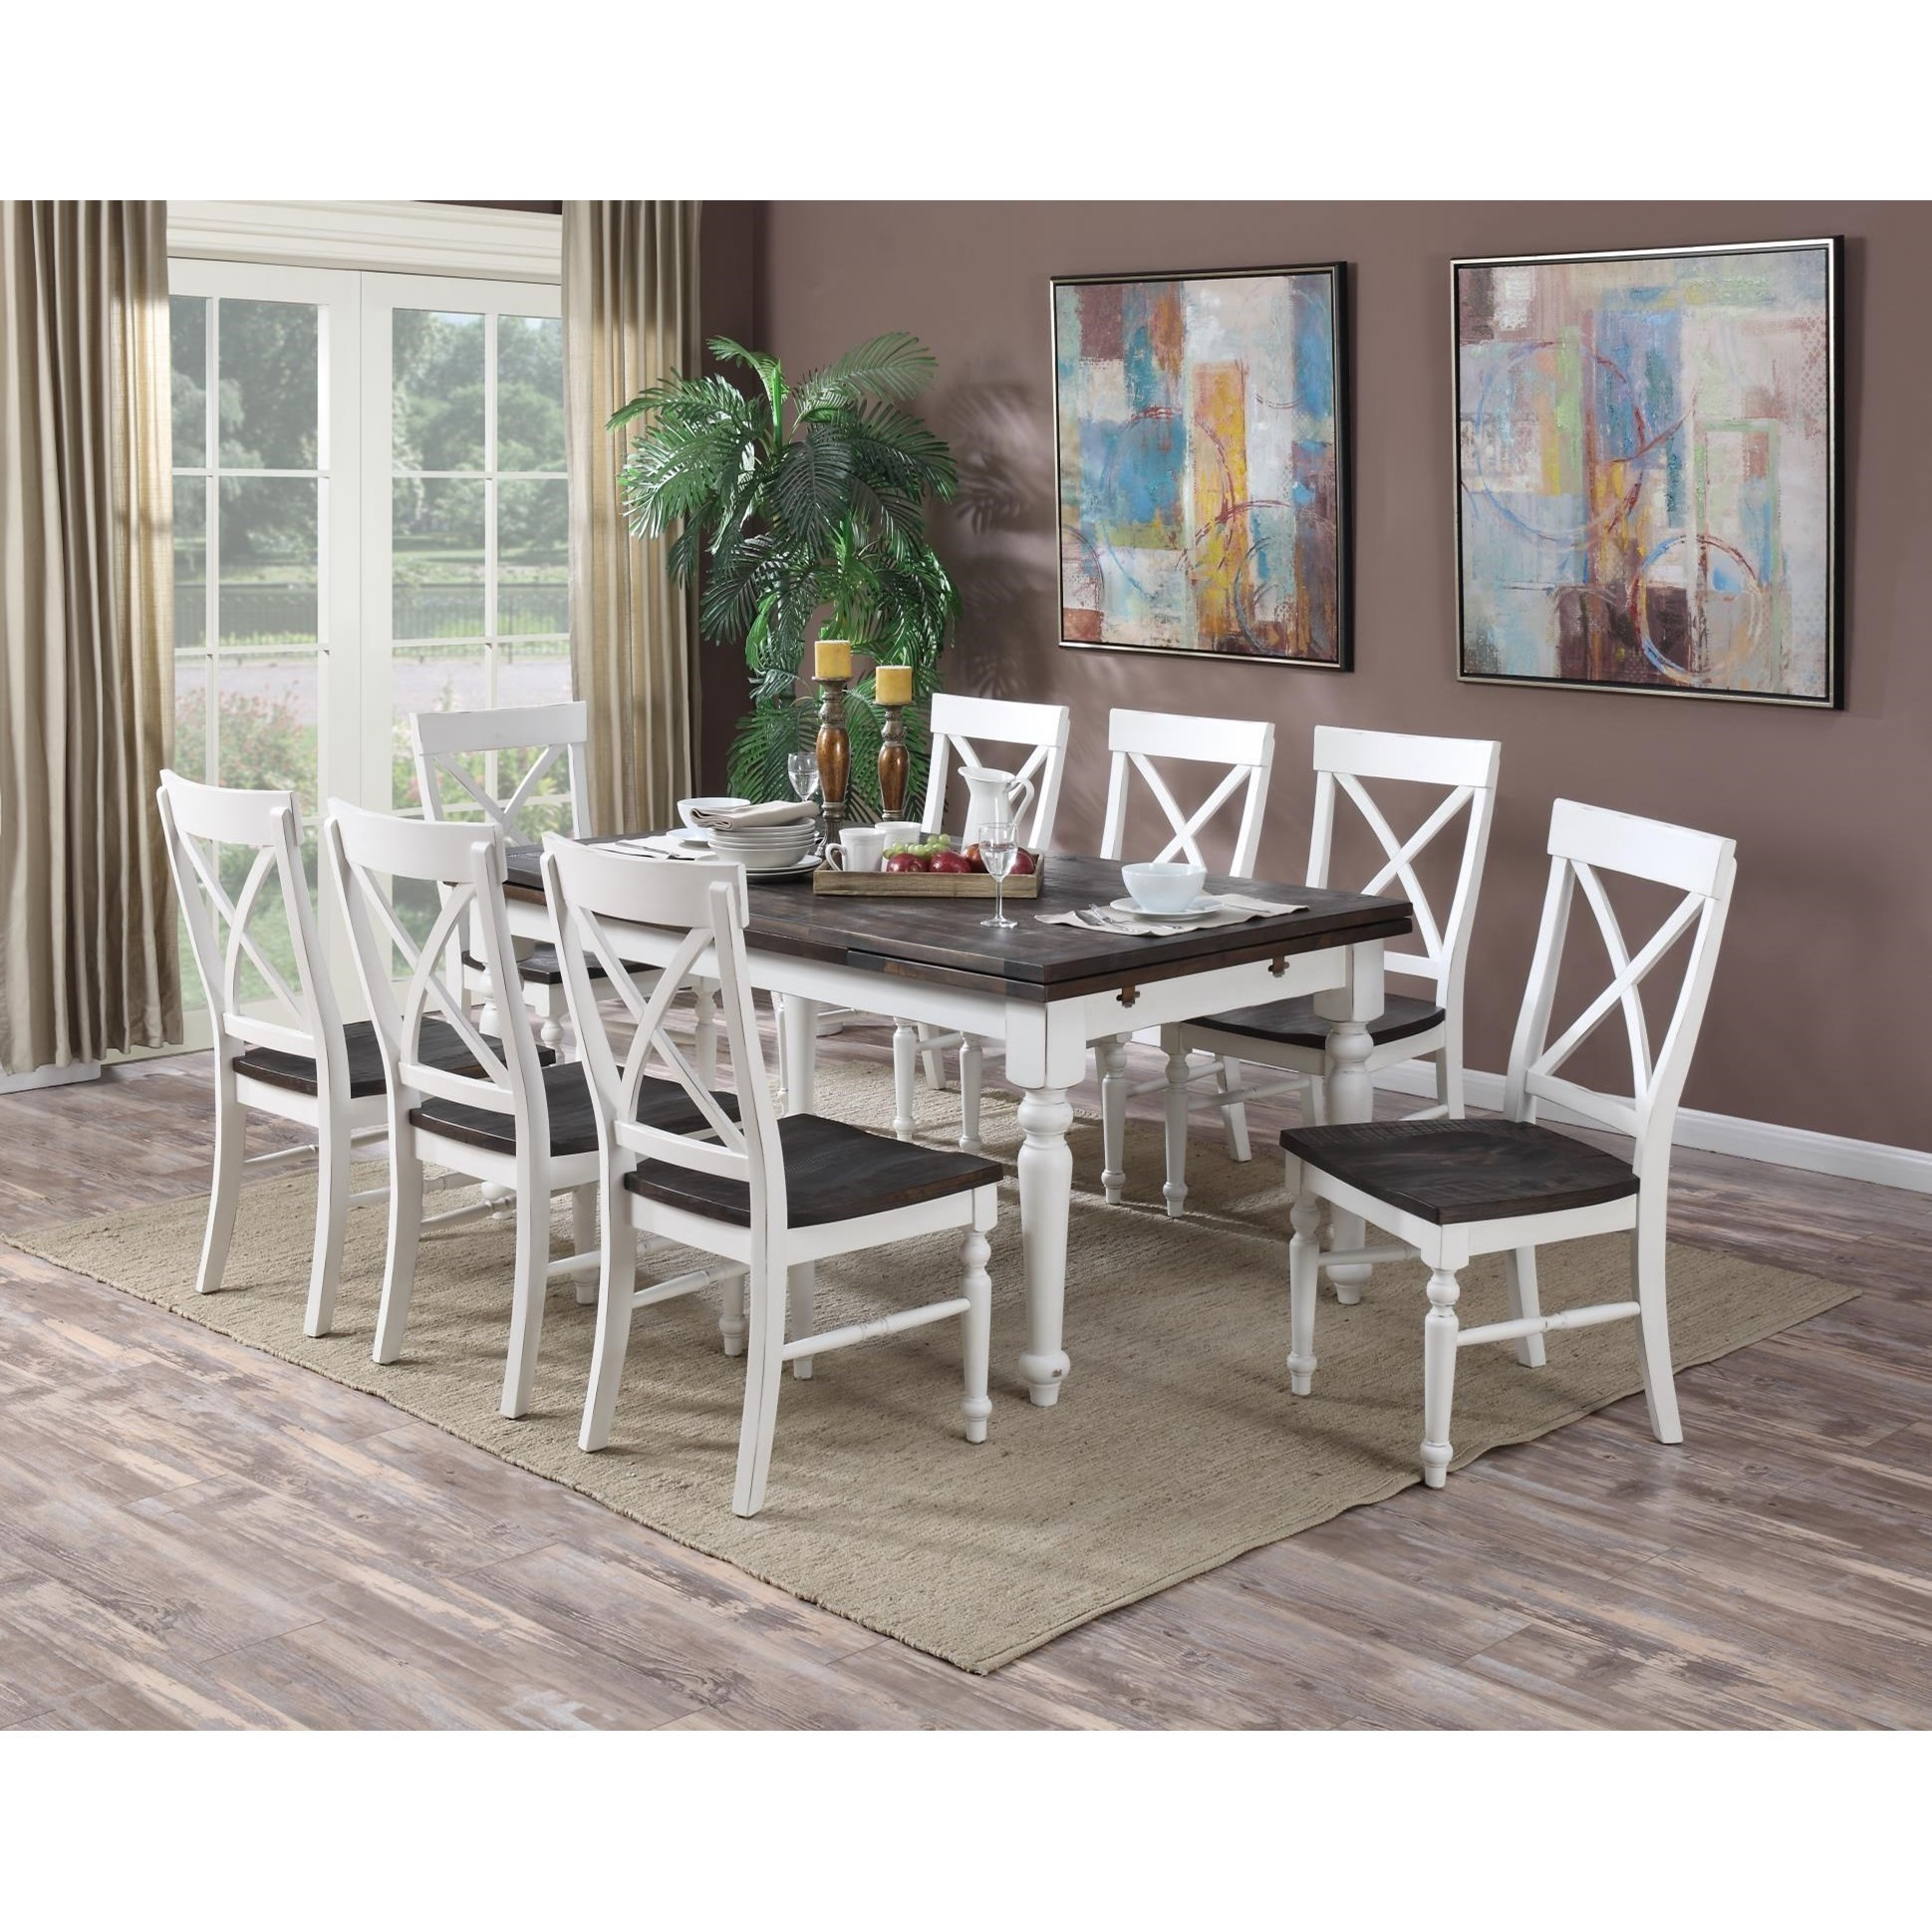 Emerald Mountain Retreat9 Piece Dining Table And Chair Set